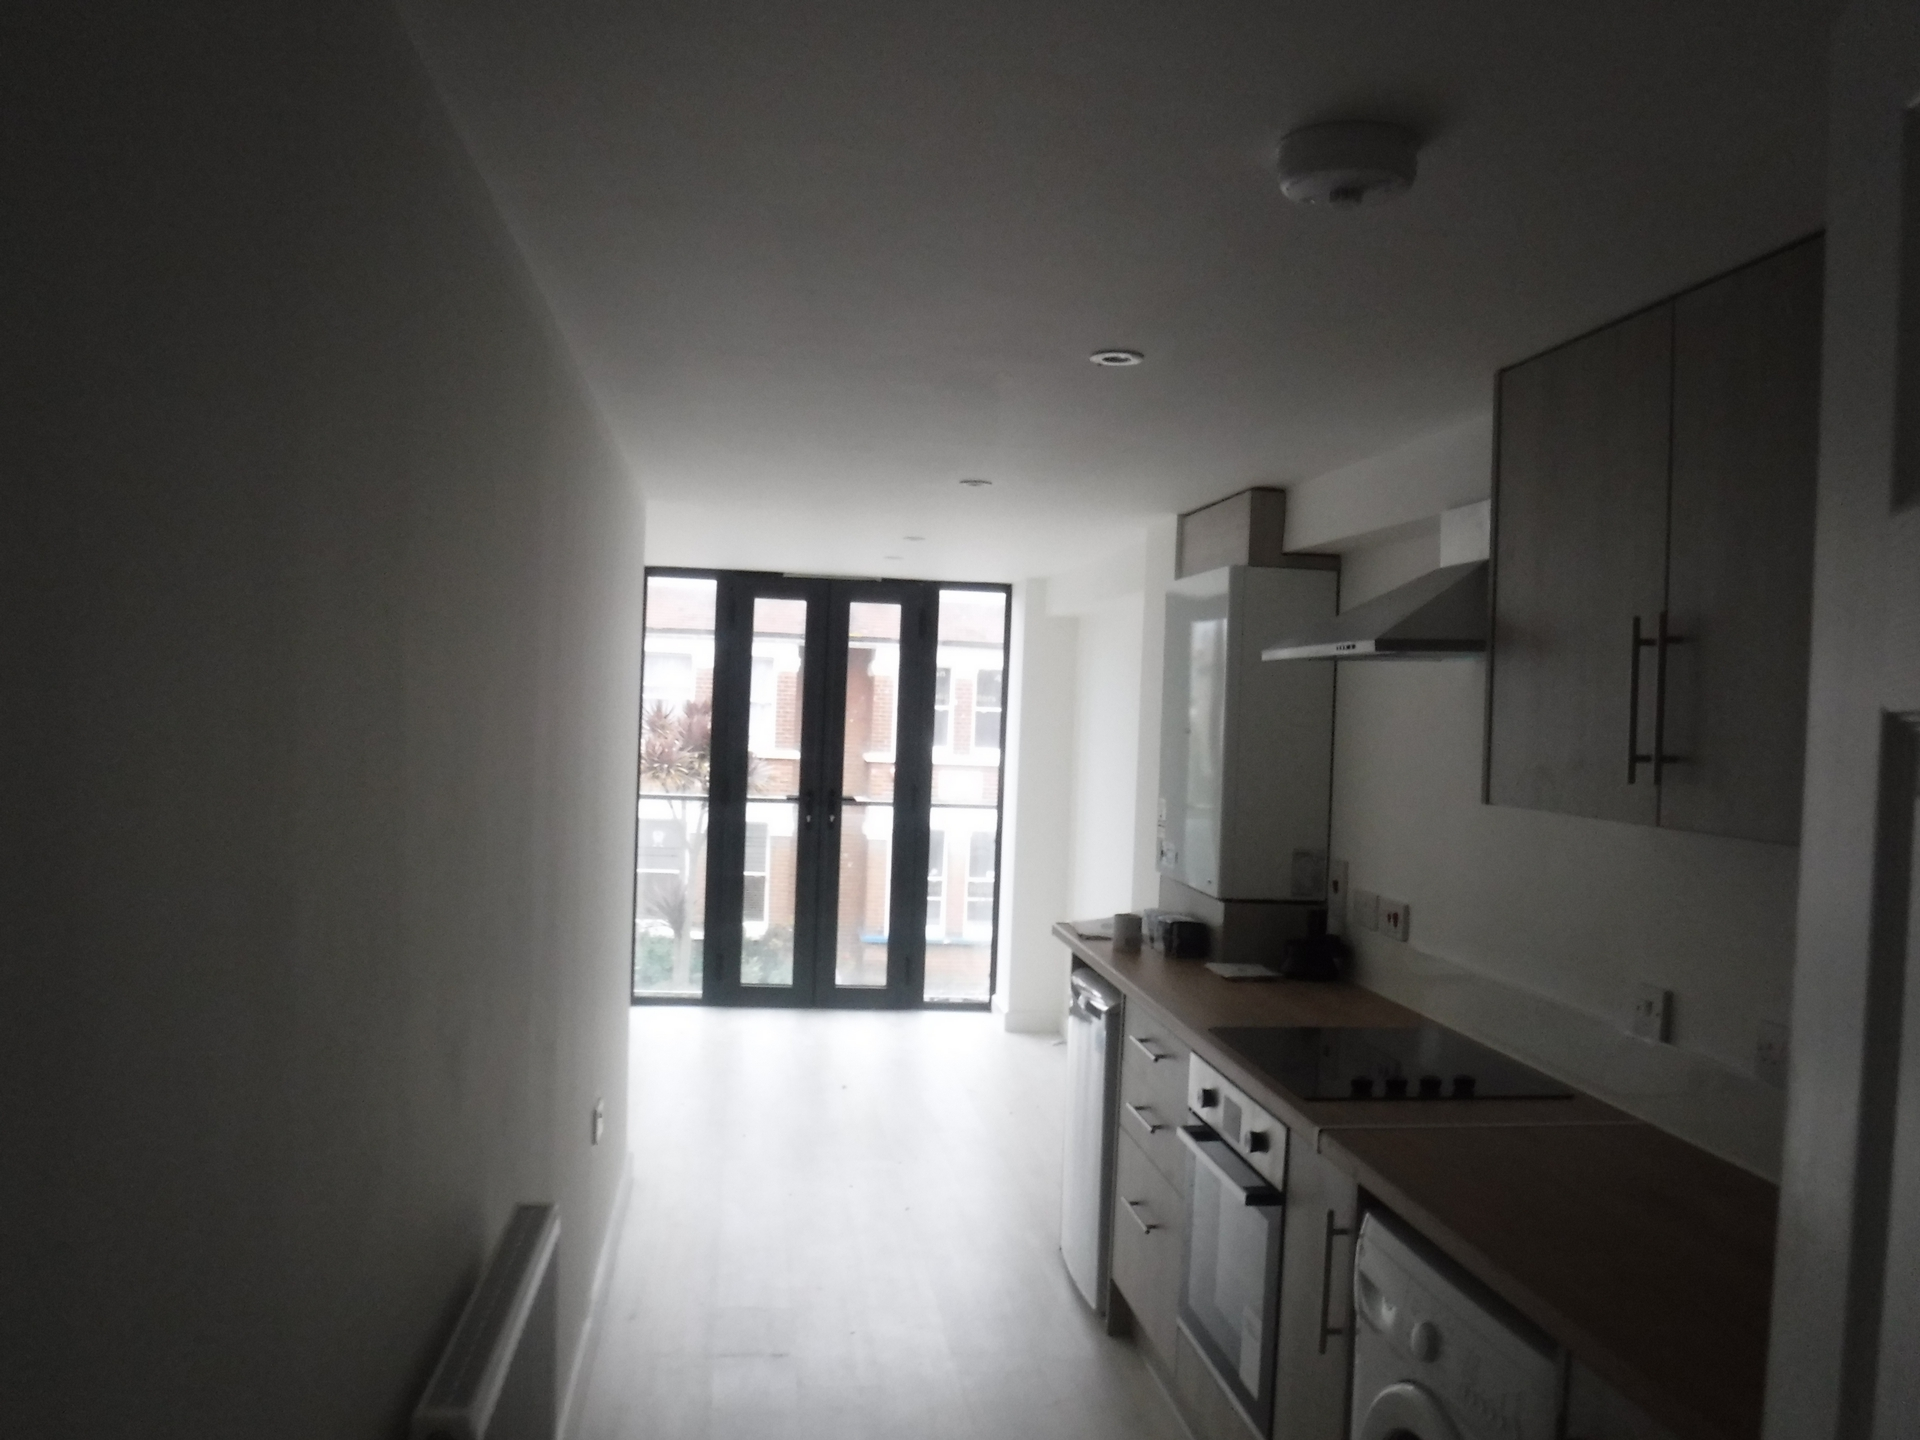 2 bed flat to rent in High Street, Broadstairs, CT10, CT10